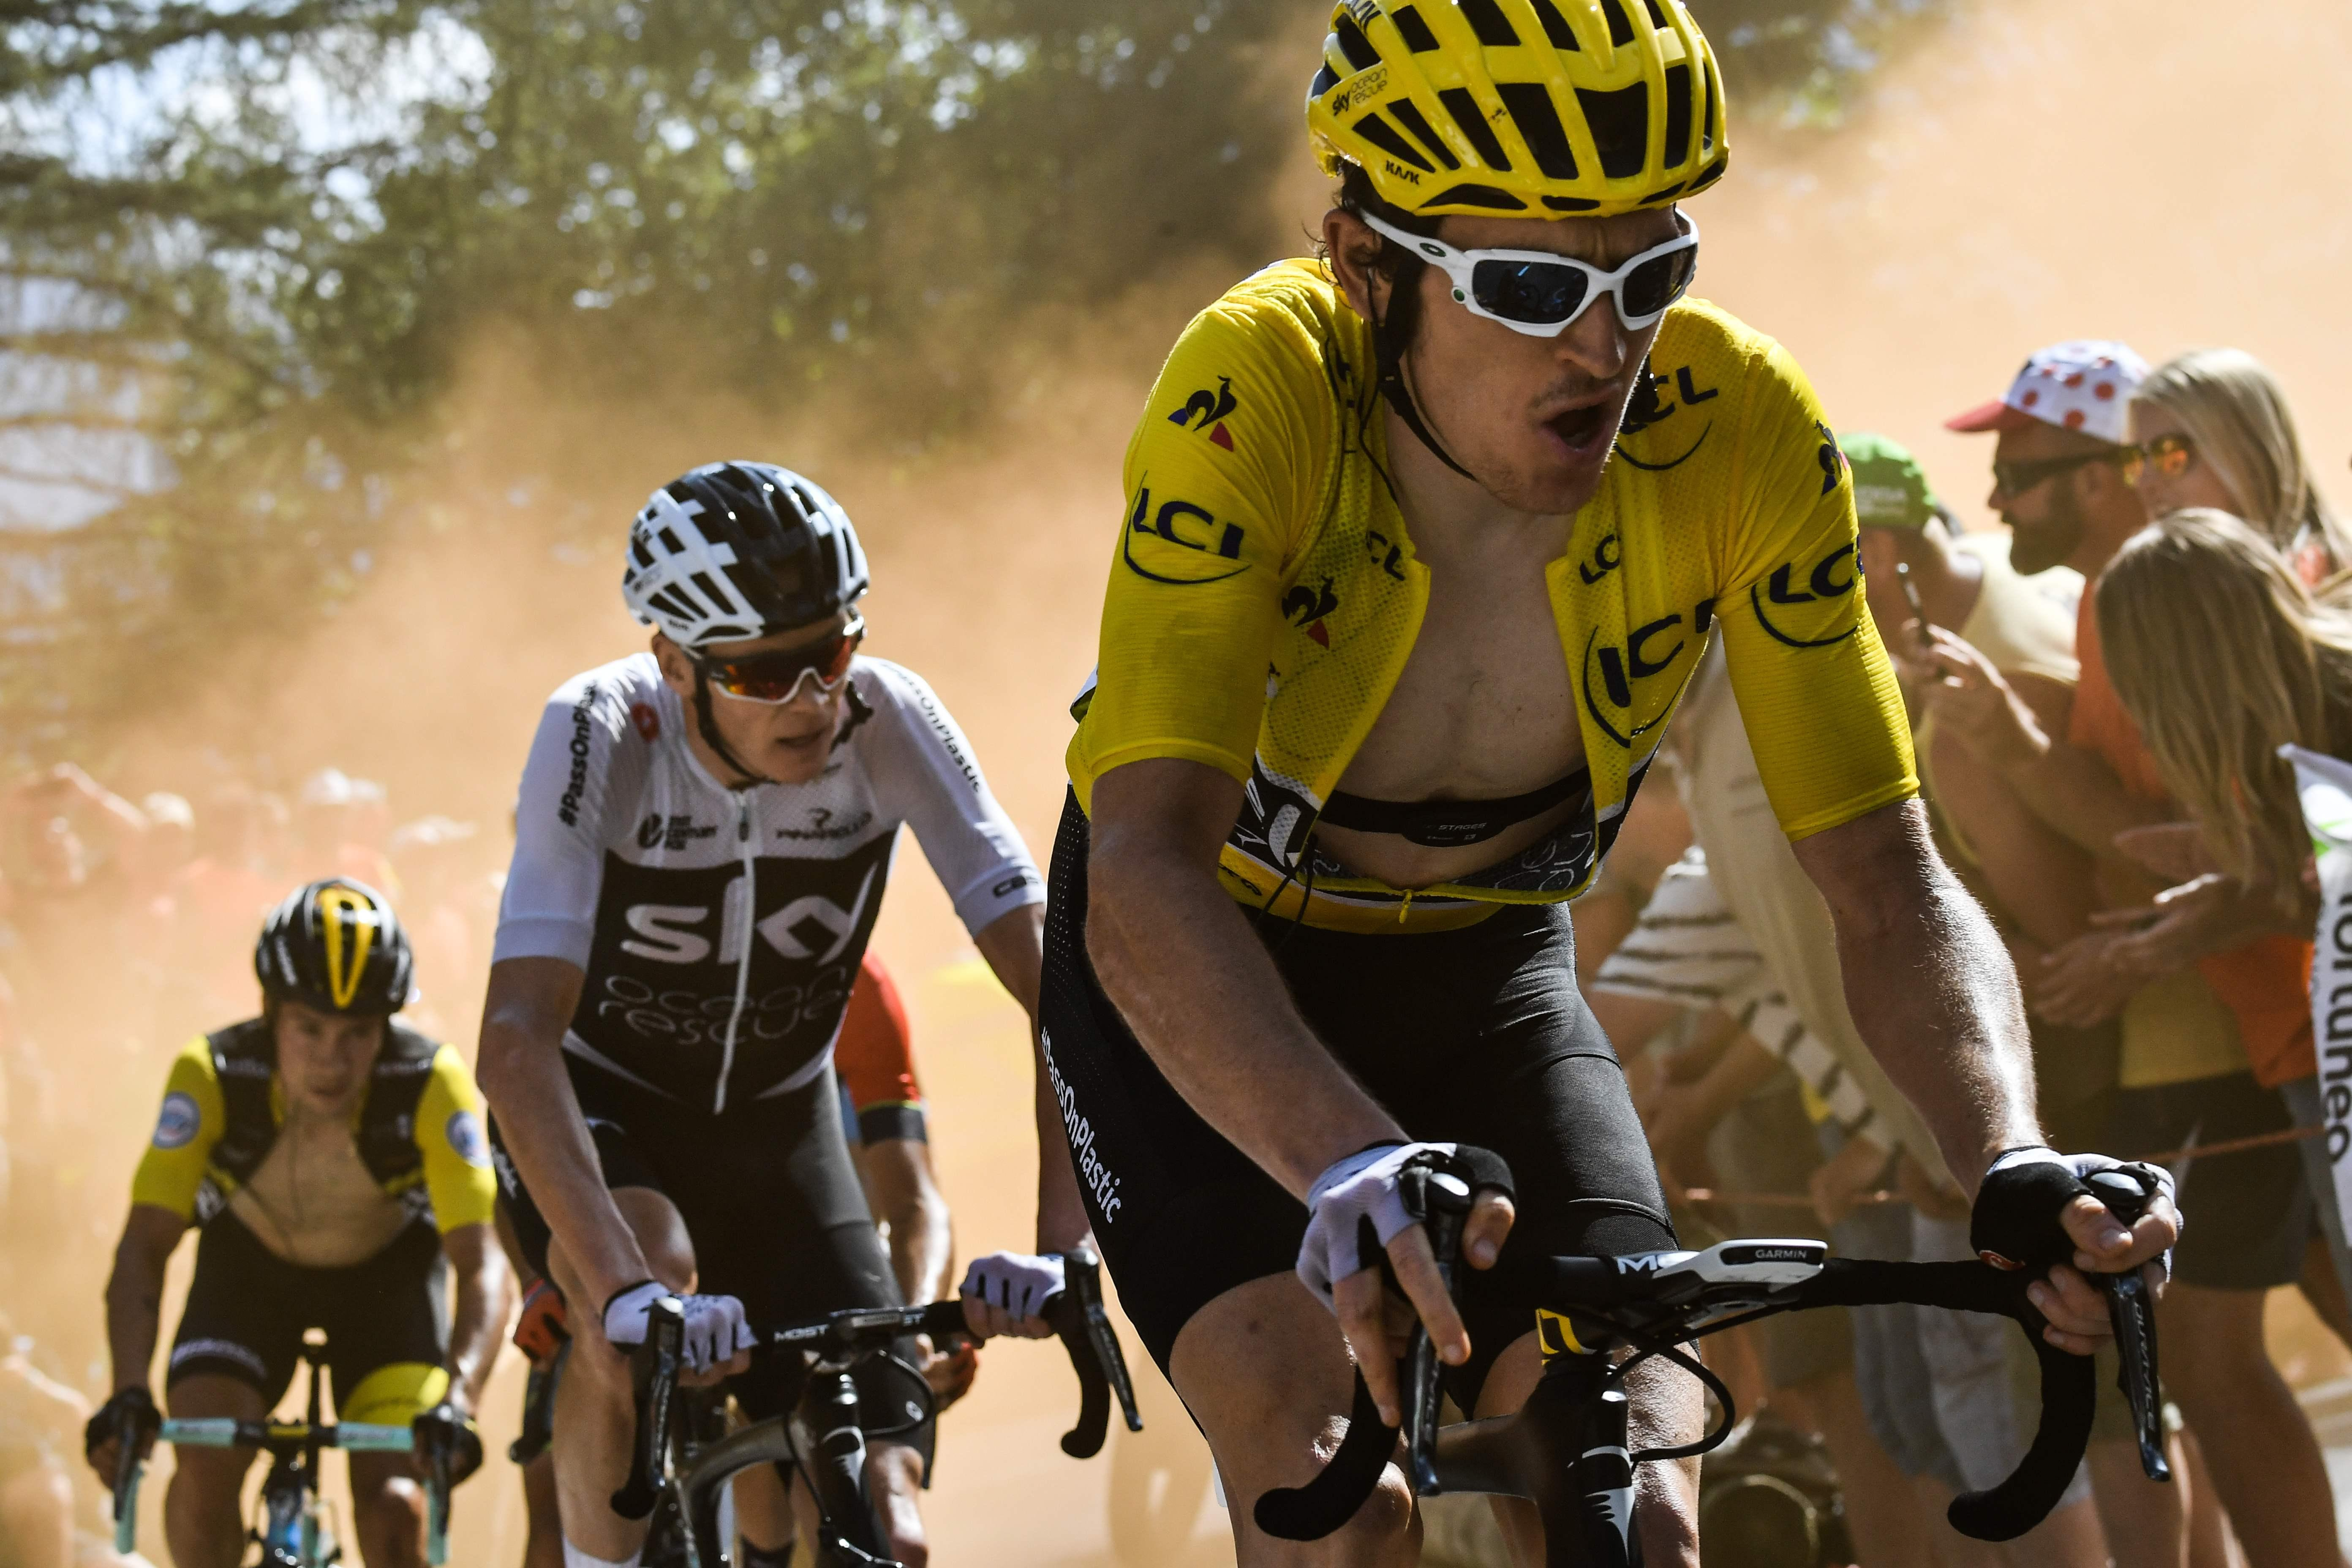 Geraint Thomas, right, became the third Brit to win the Tour de France earlier this year ahead of defending champ Chris Froome, left